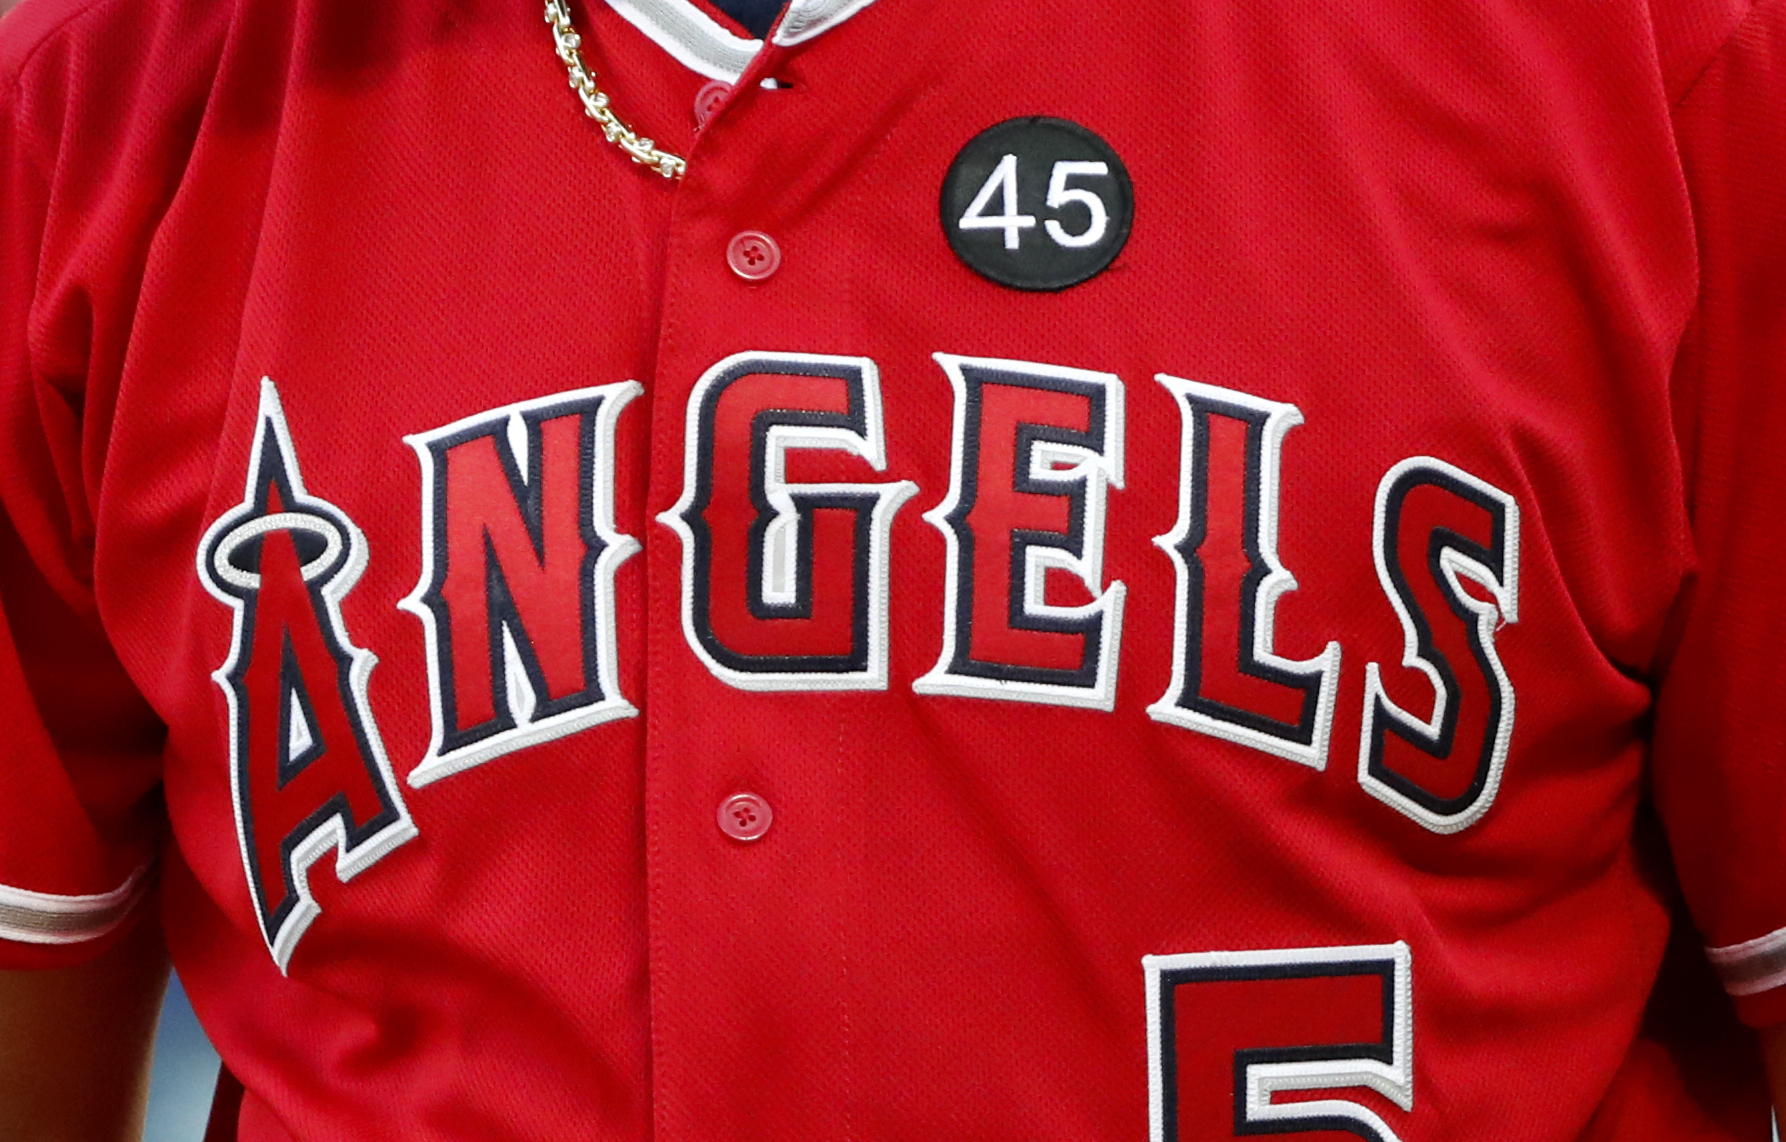 A black patch with the number 45 honoring Tyler Skaggs is seen on the jersey of Albert Pujols during an at-bat in the first inning of a baseball game against the Texas Rangers in Arlington, Texas, Tuesday, July 2, 2019. The entire staff and team wore the